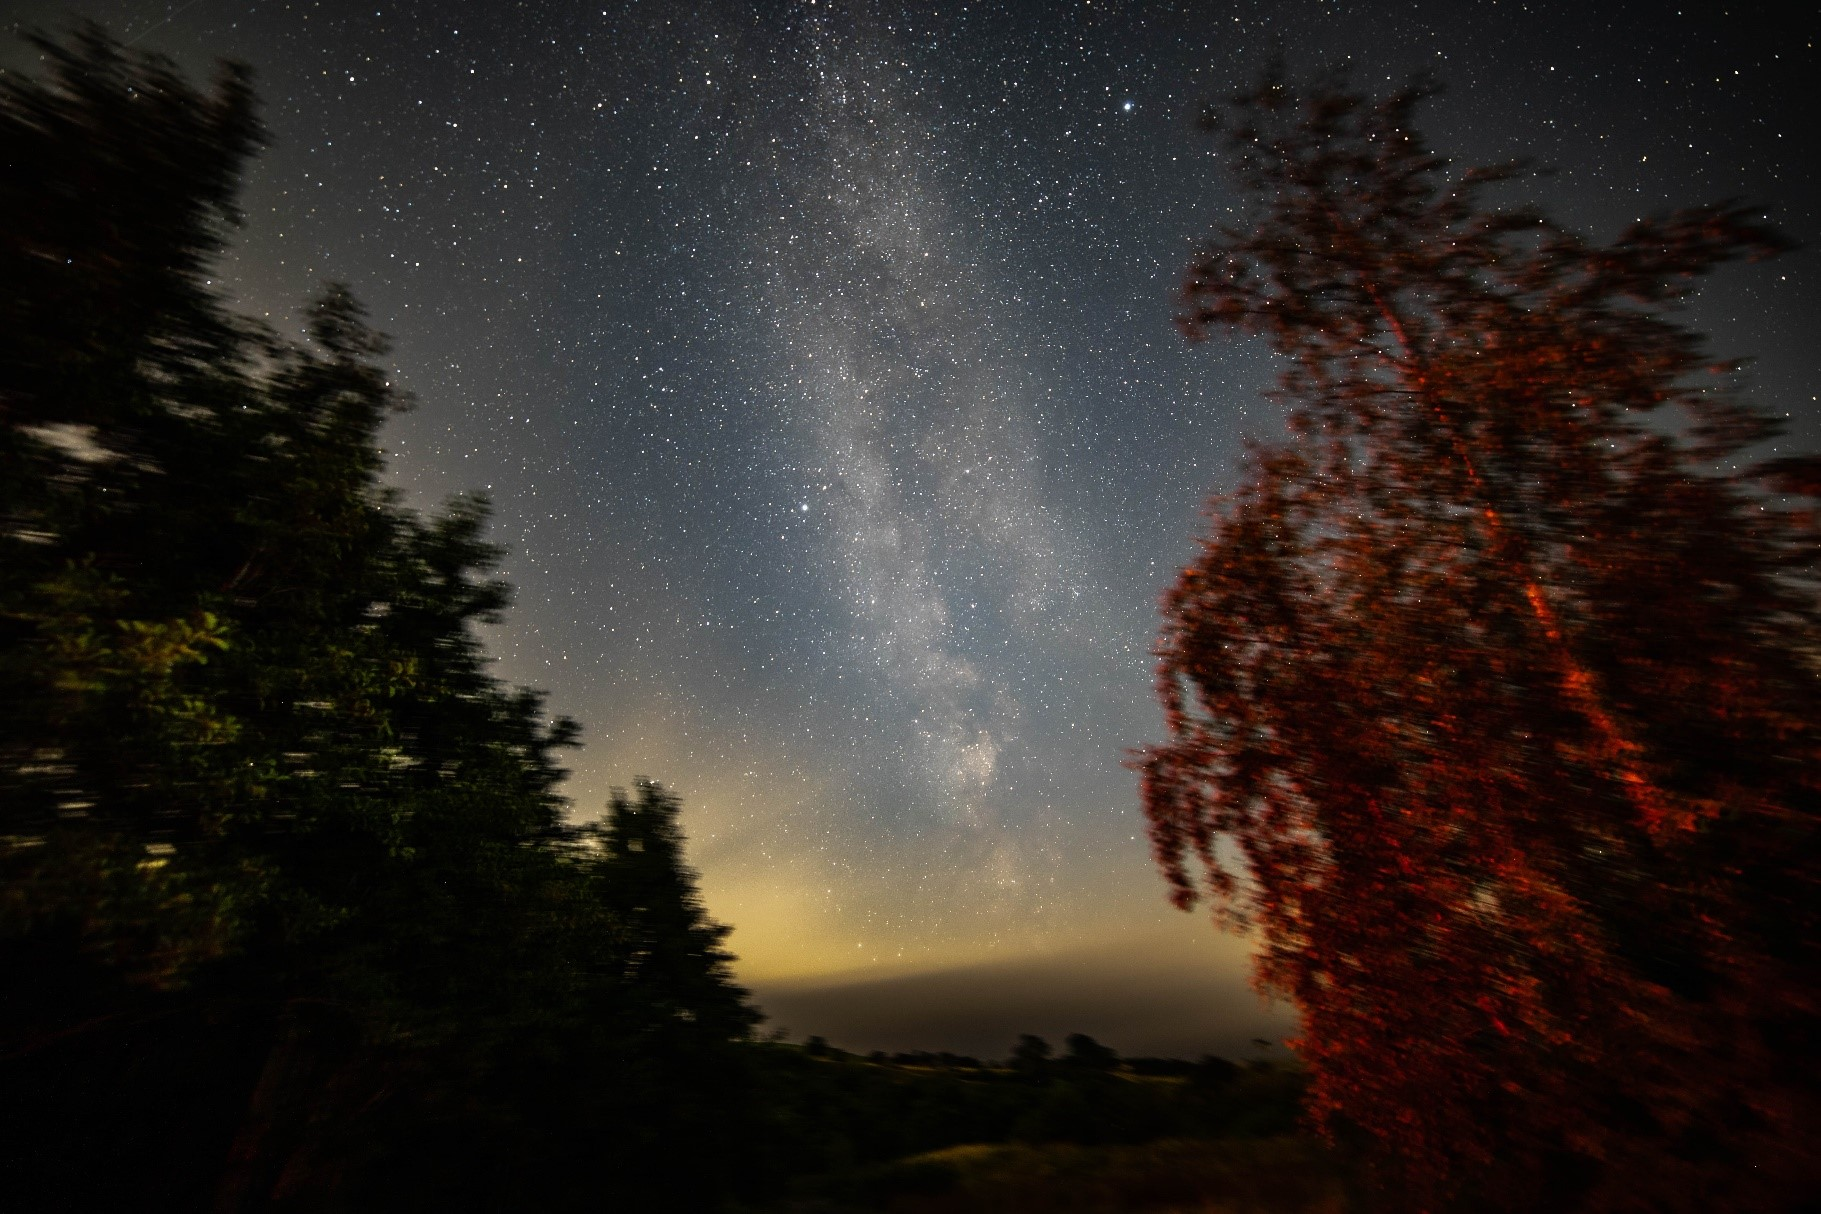 Image of night sky with the milky way and stars with the silhouette of trees